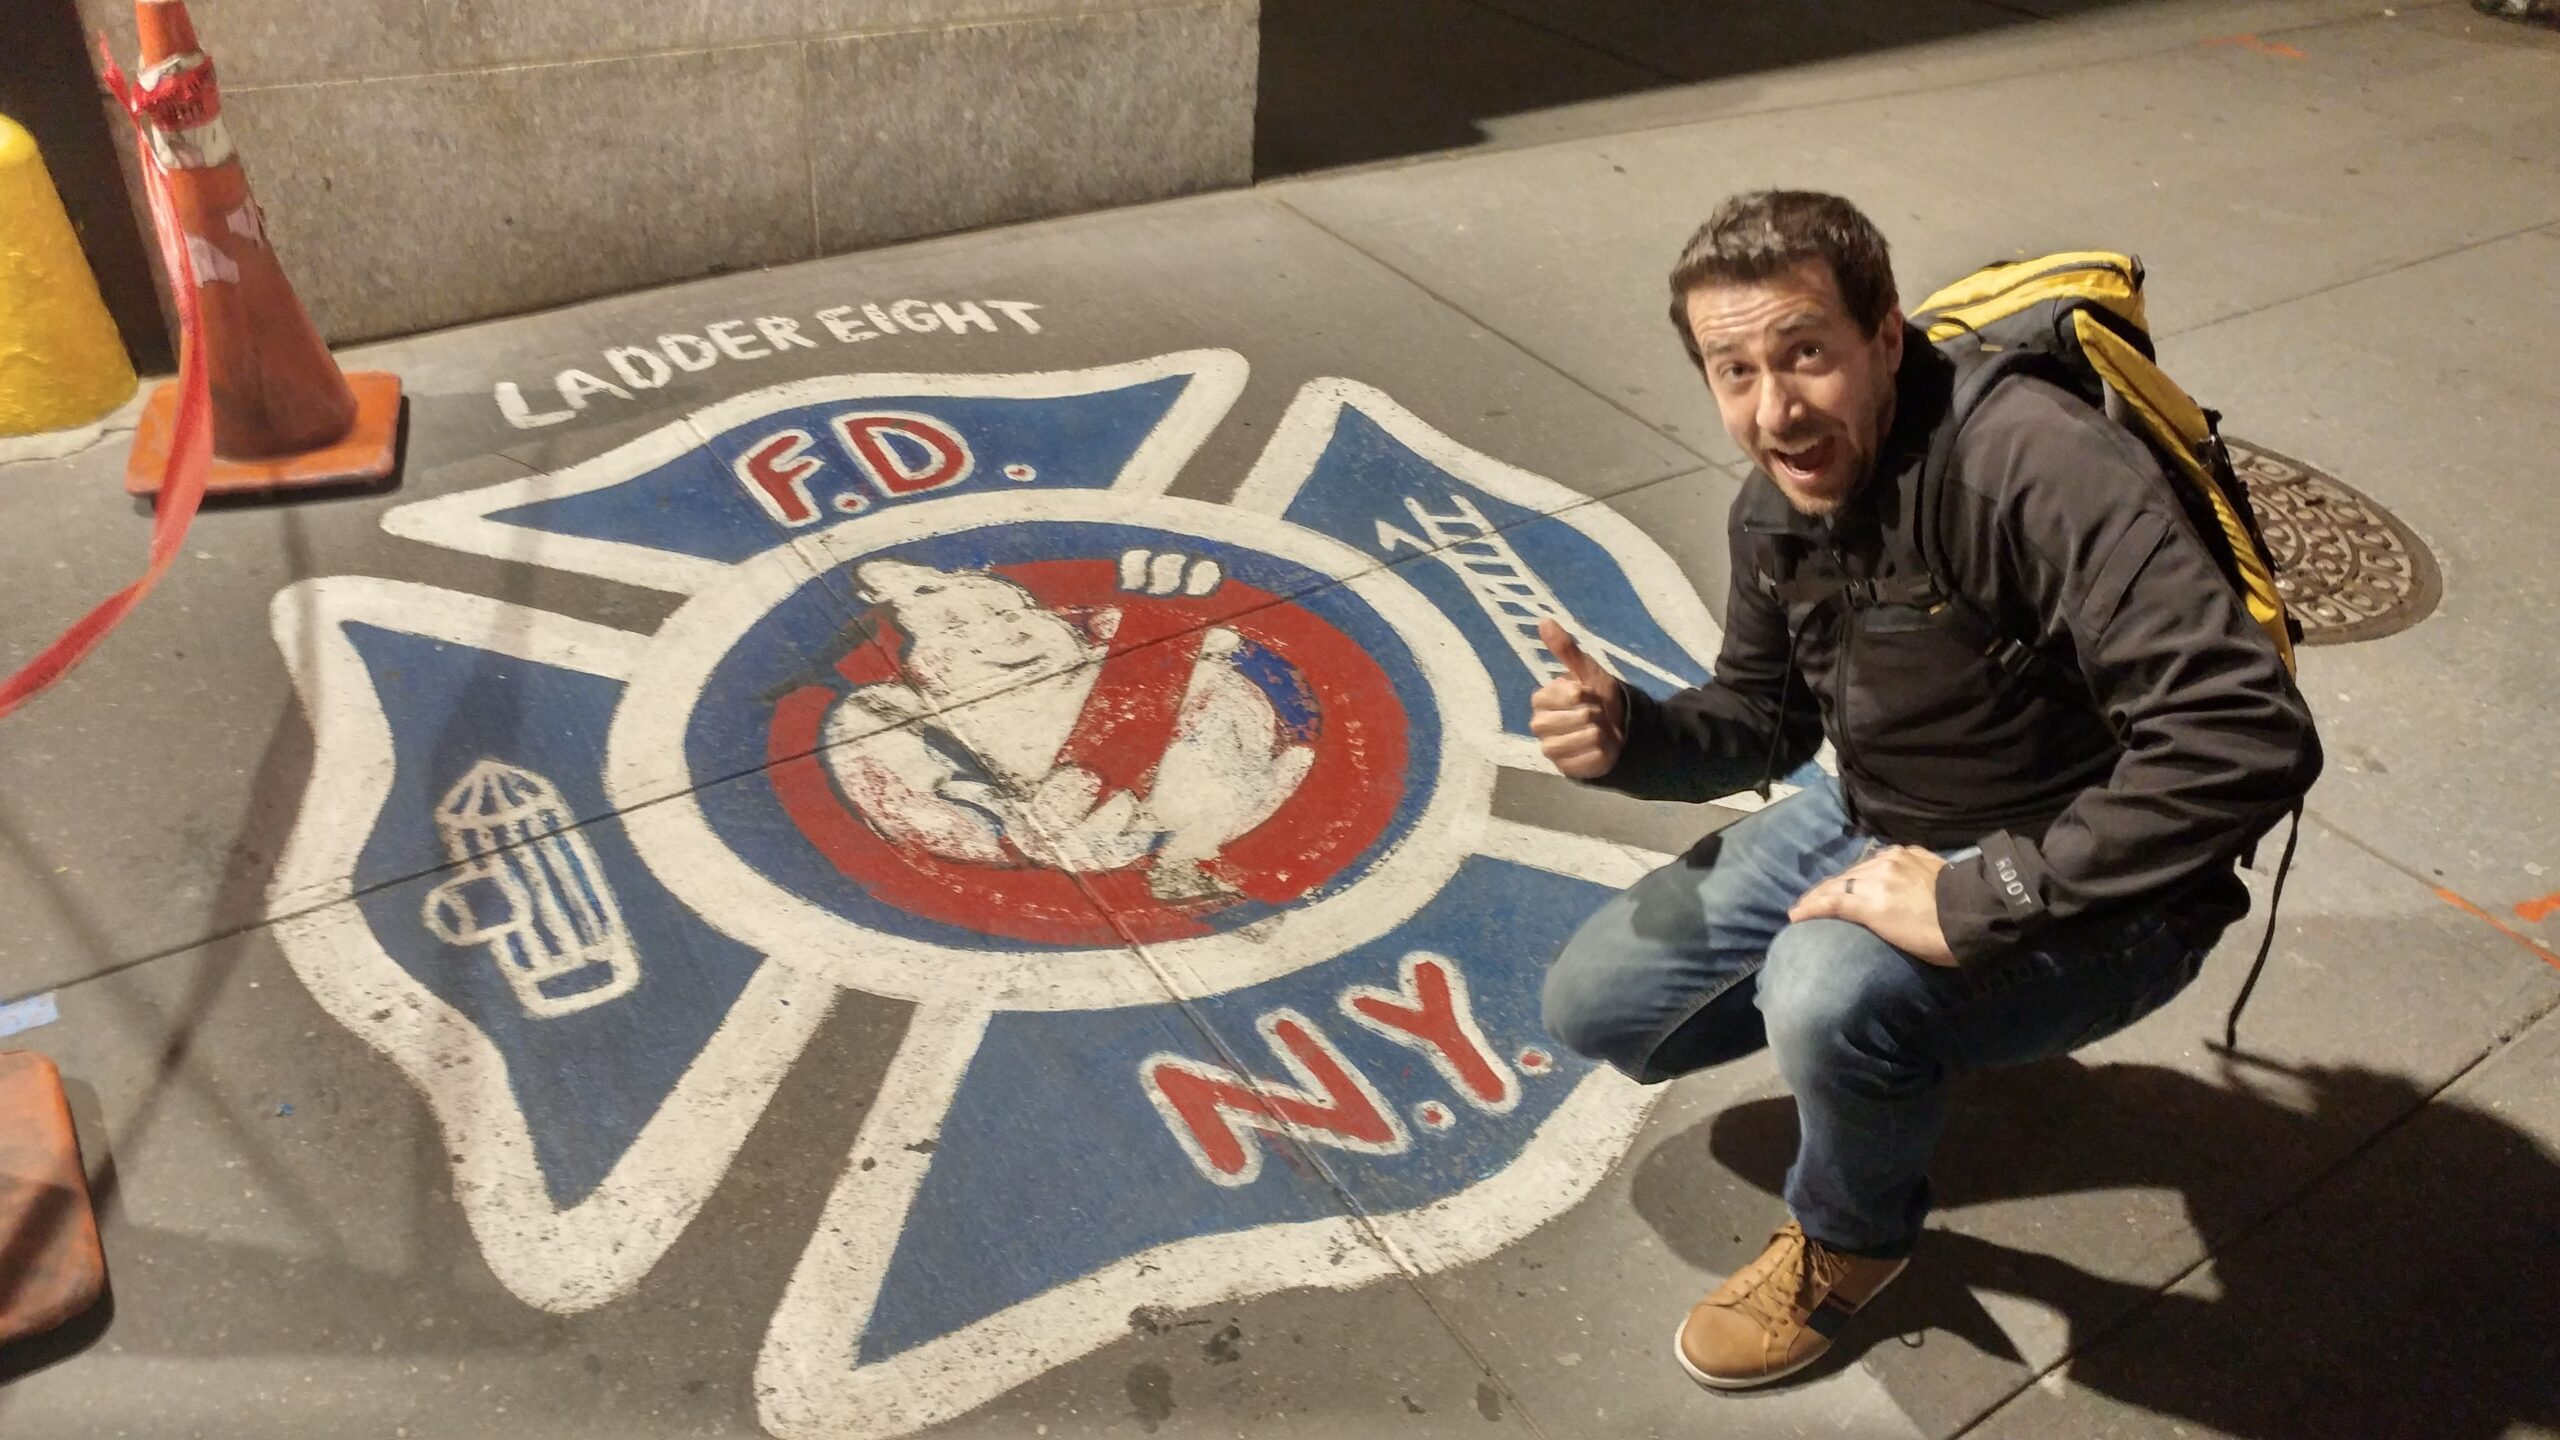 Ghostbusters Fire Hall